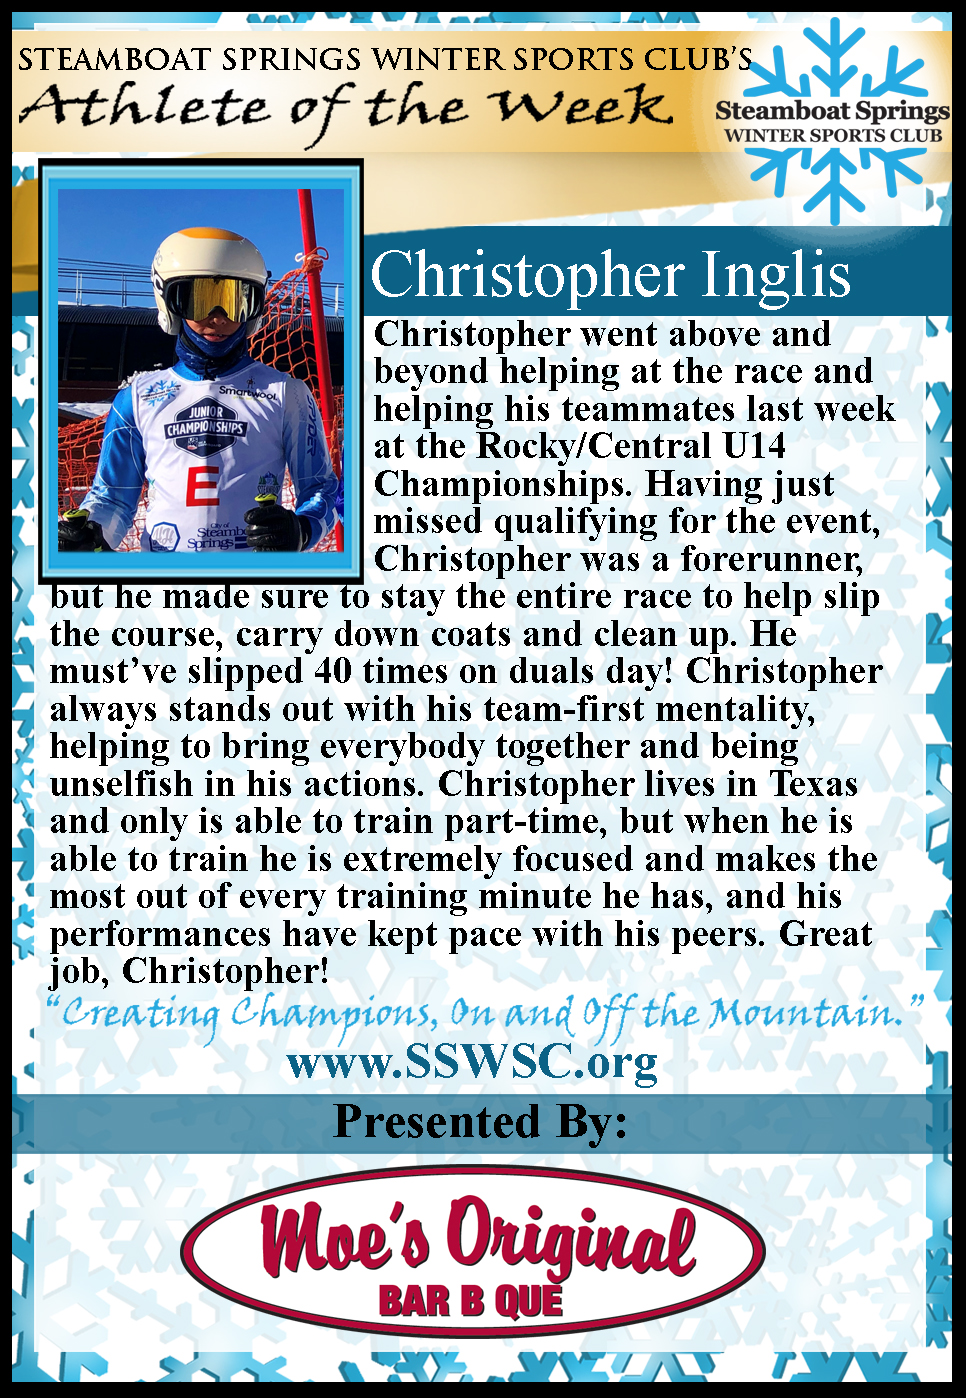 Athlete of the Week, Christopher Inglis